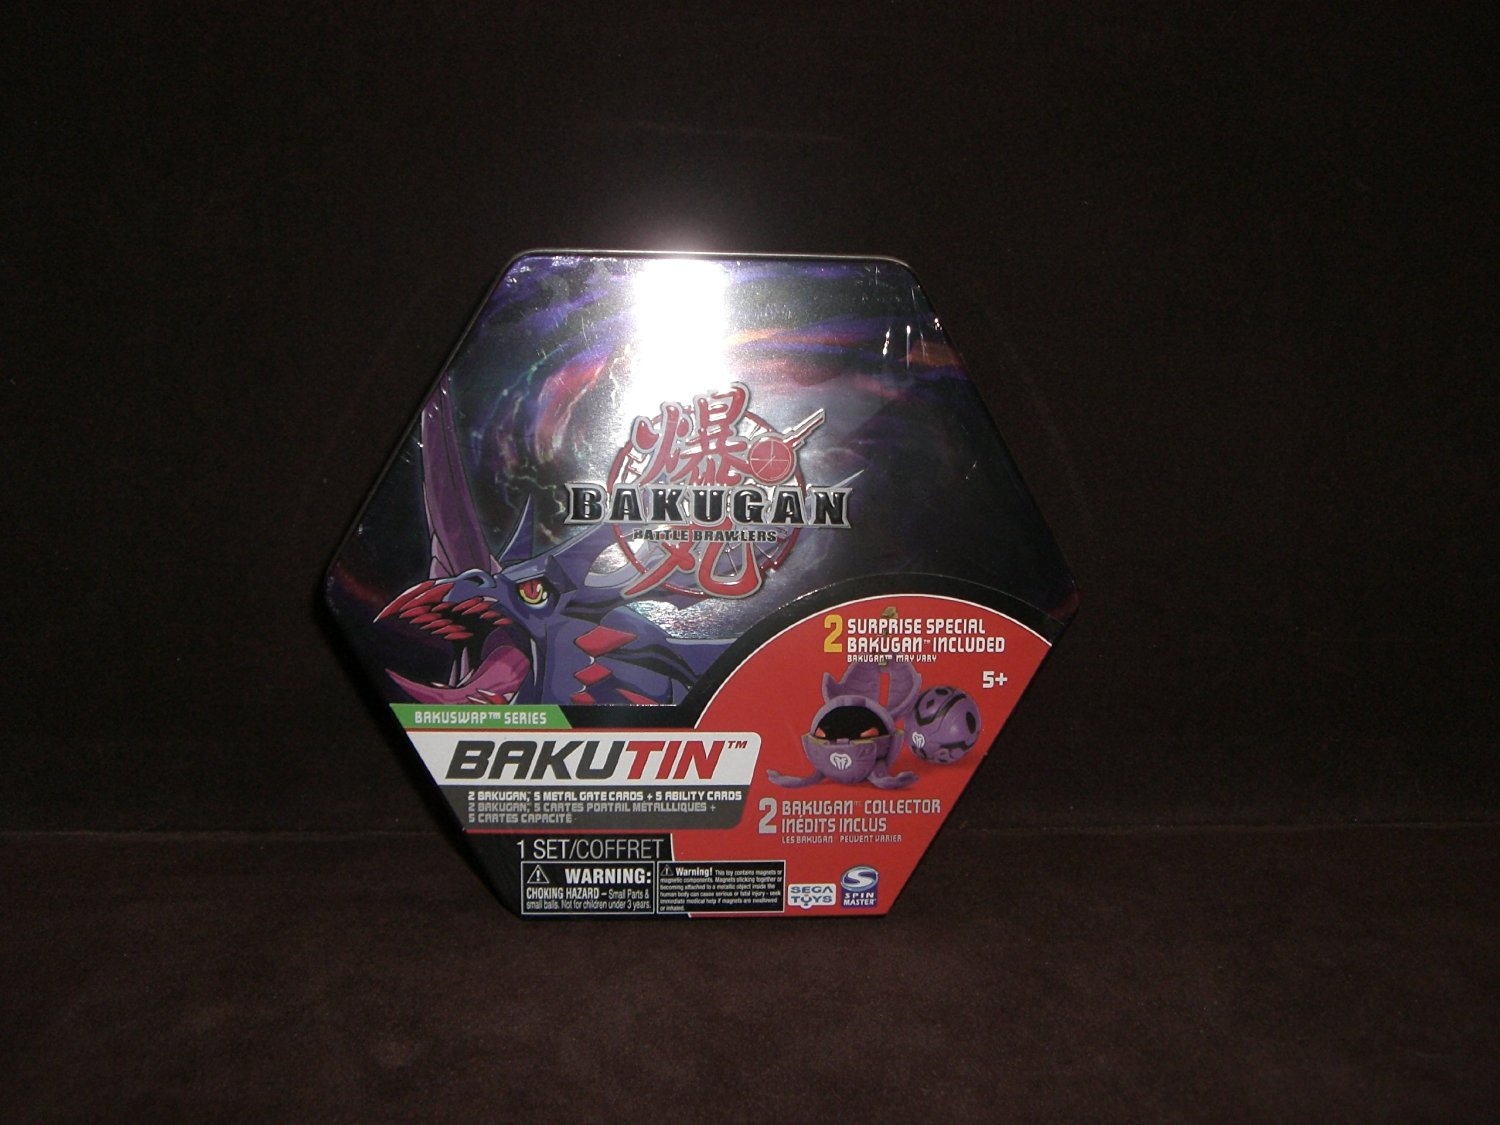 Bakugan Battle Brawlers Bakubronze Series Darkus (Black) Bakutin ~ Inside are 2 Collector Bakugan, 5 Ability Cards, 5 Metal Gate Cards and 2 Removable Trays~The Perfect place to store all of your Bakugan!